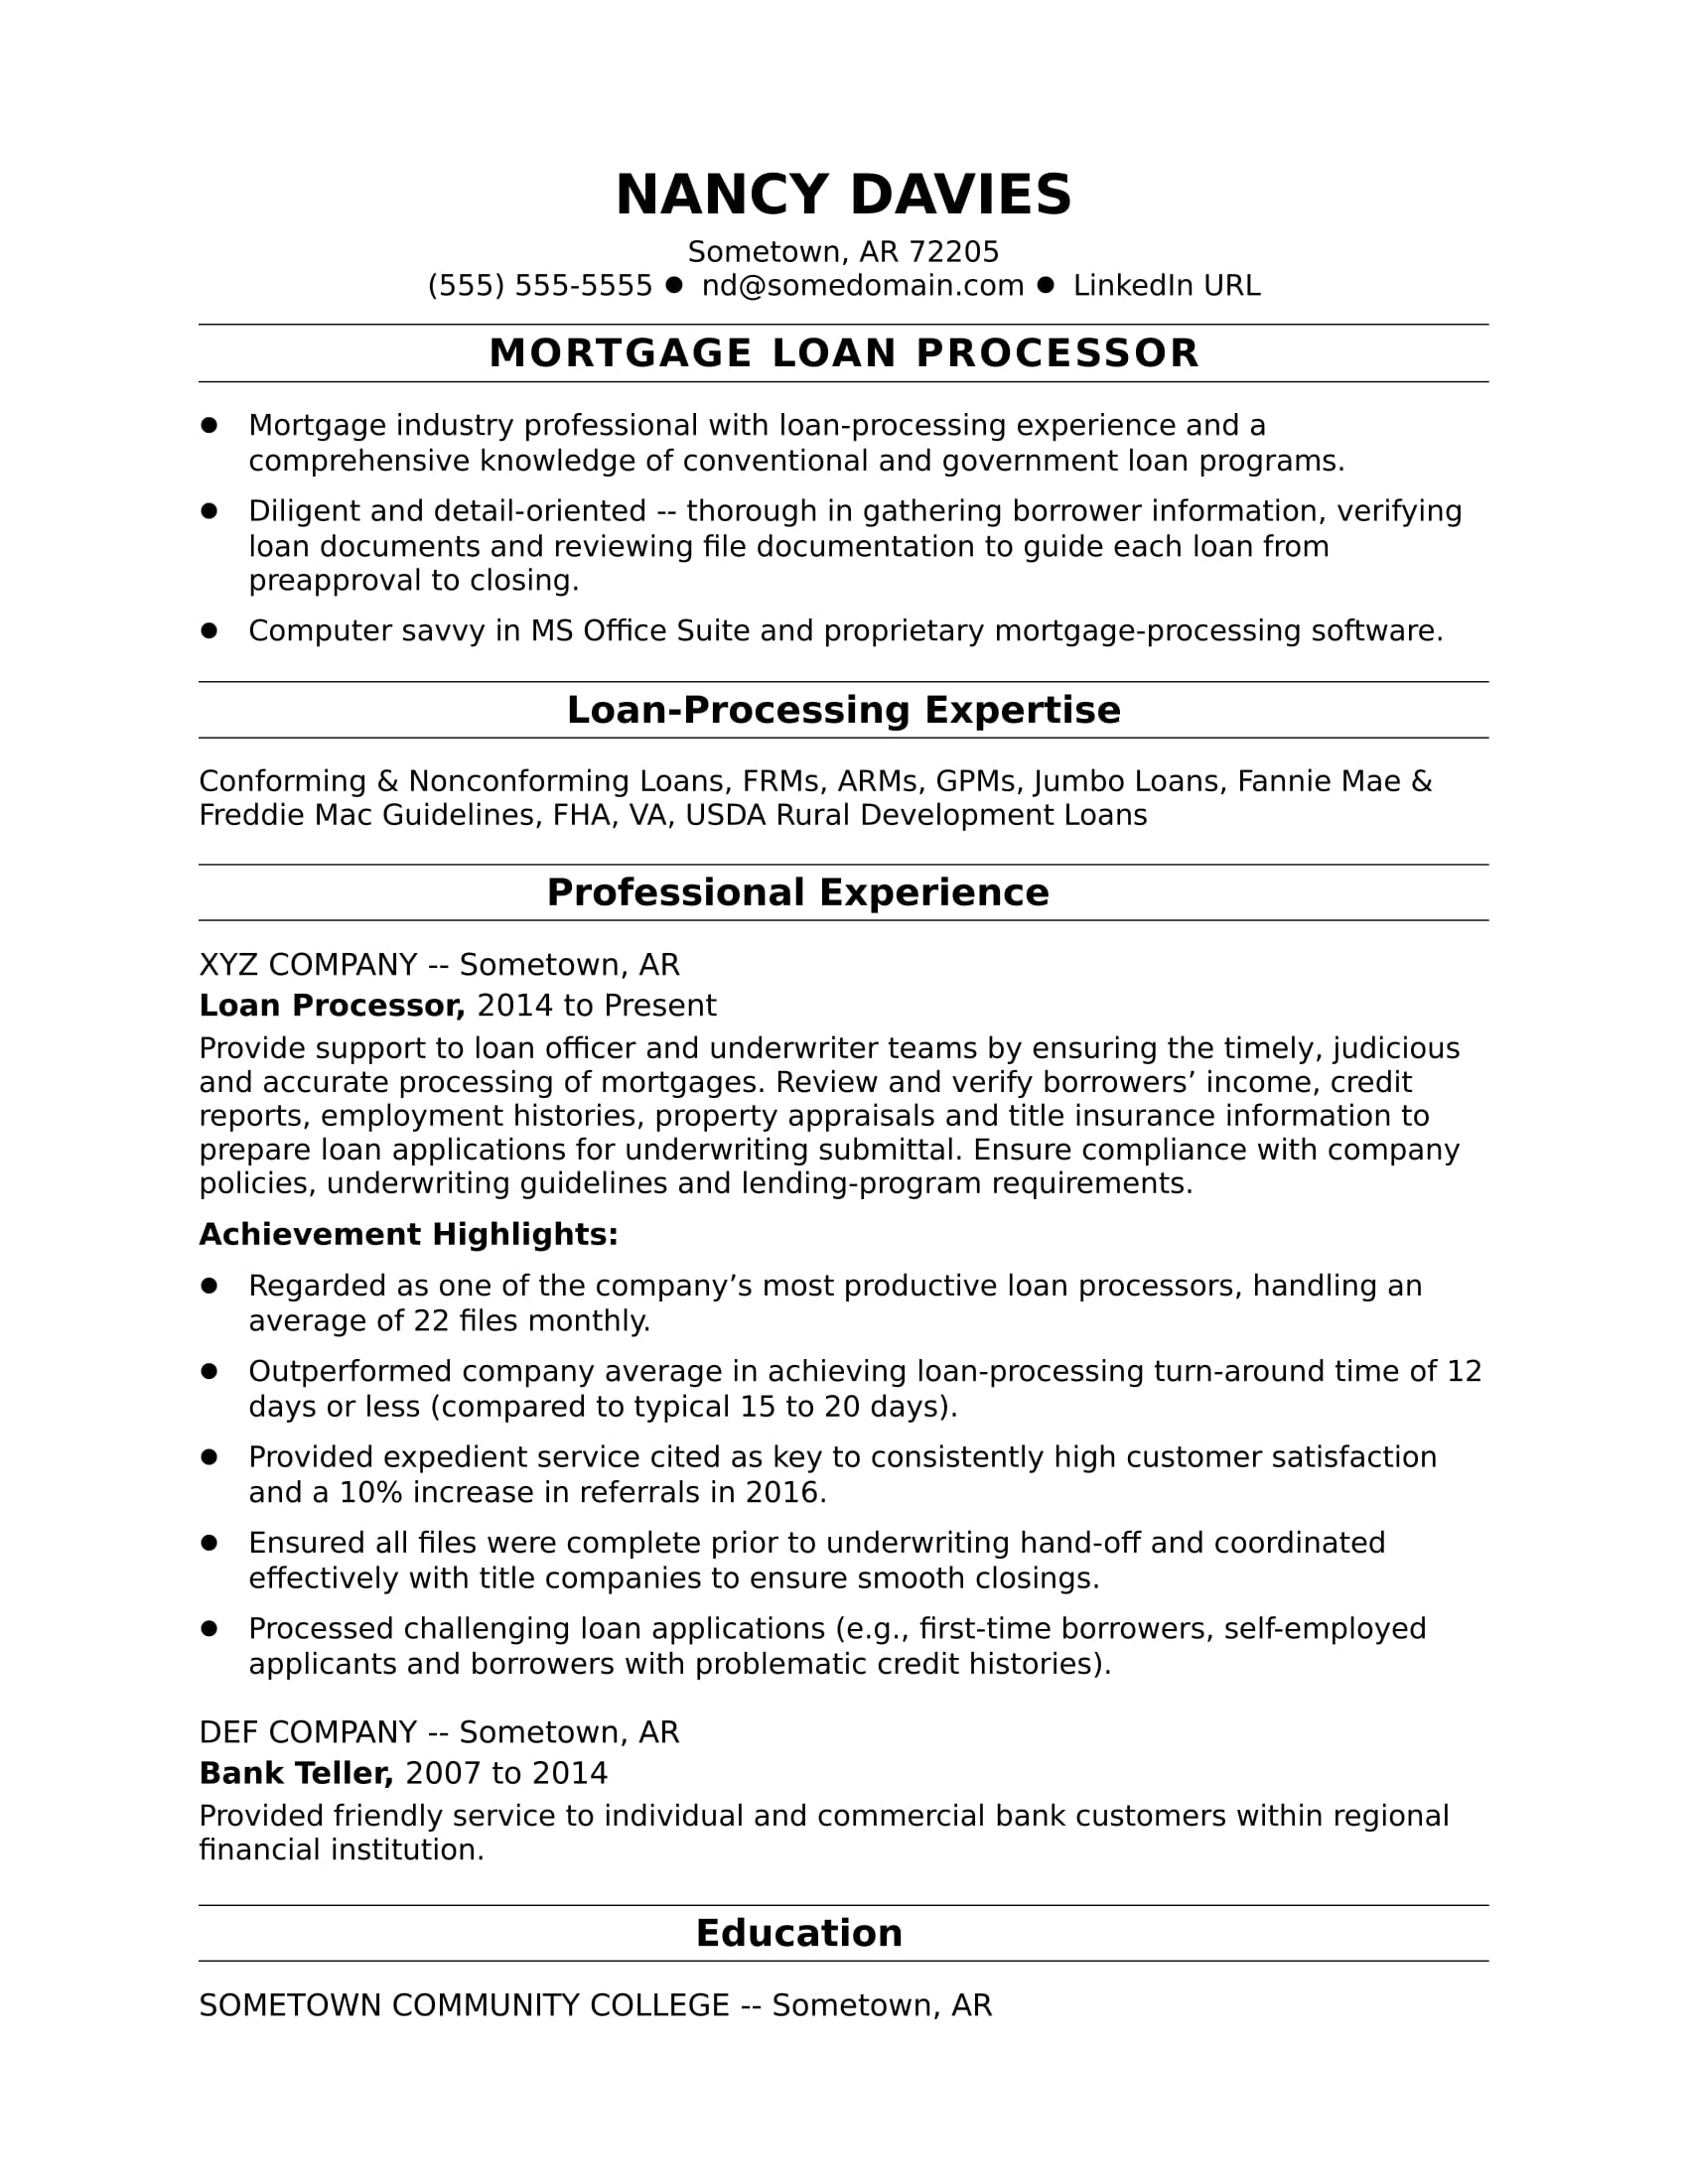 sample resume for a mortgage loan processor - Guidelines For Resume